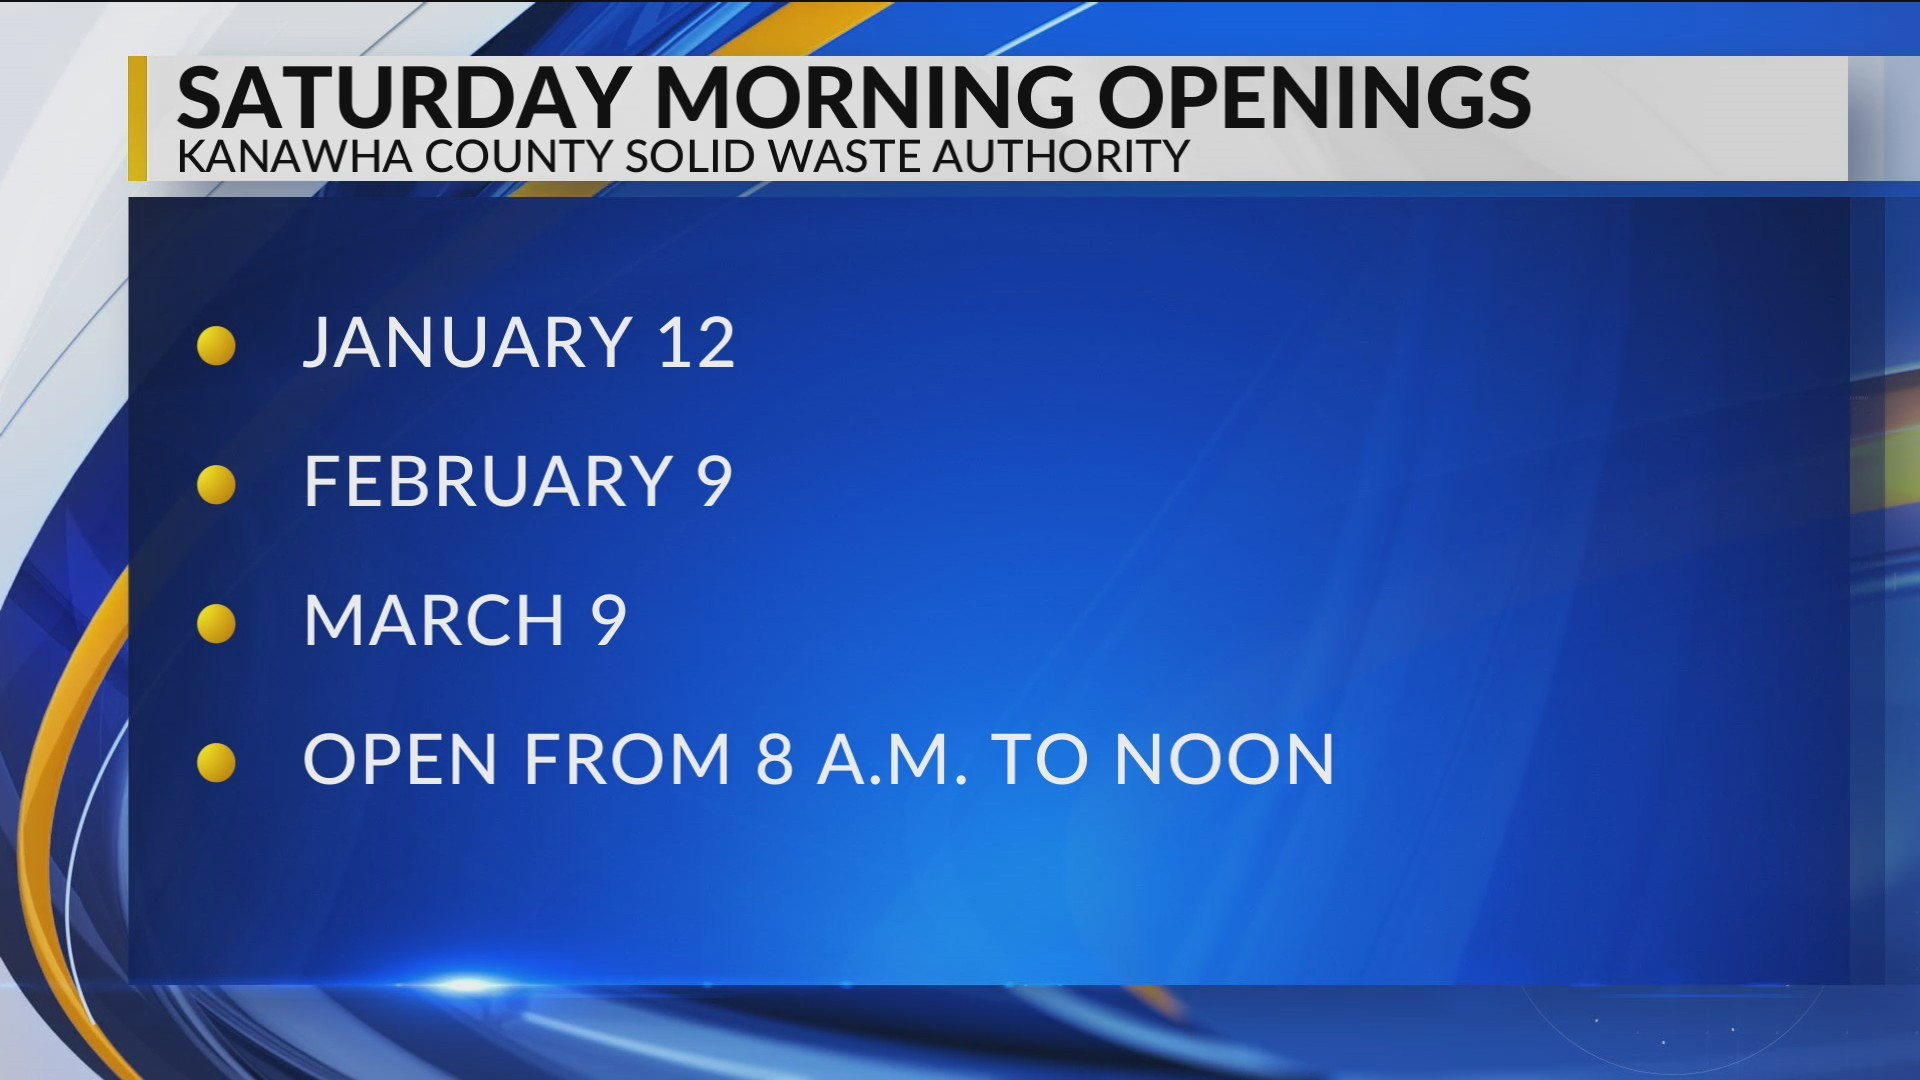 Kanawha County Solid Waste Authority to Open one Saturday each Month